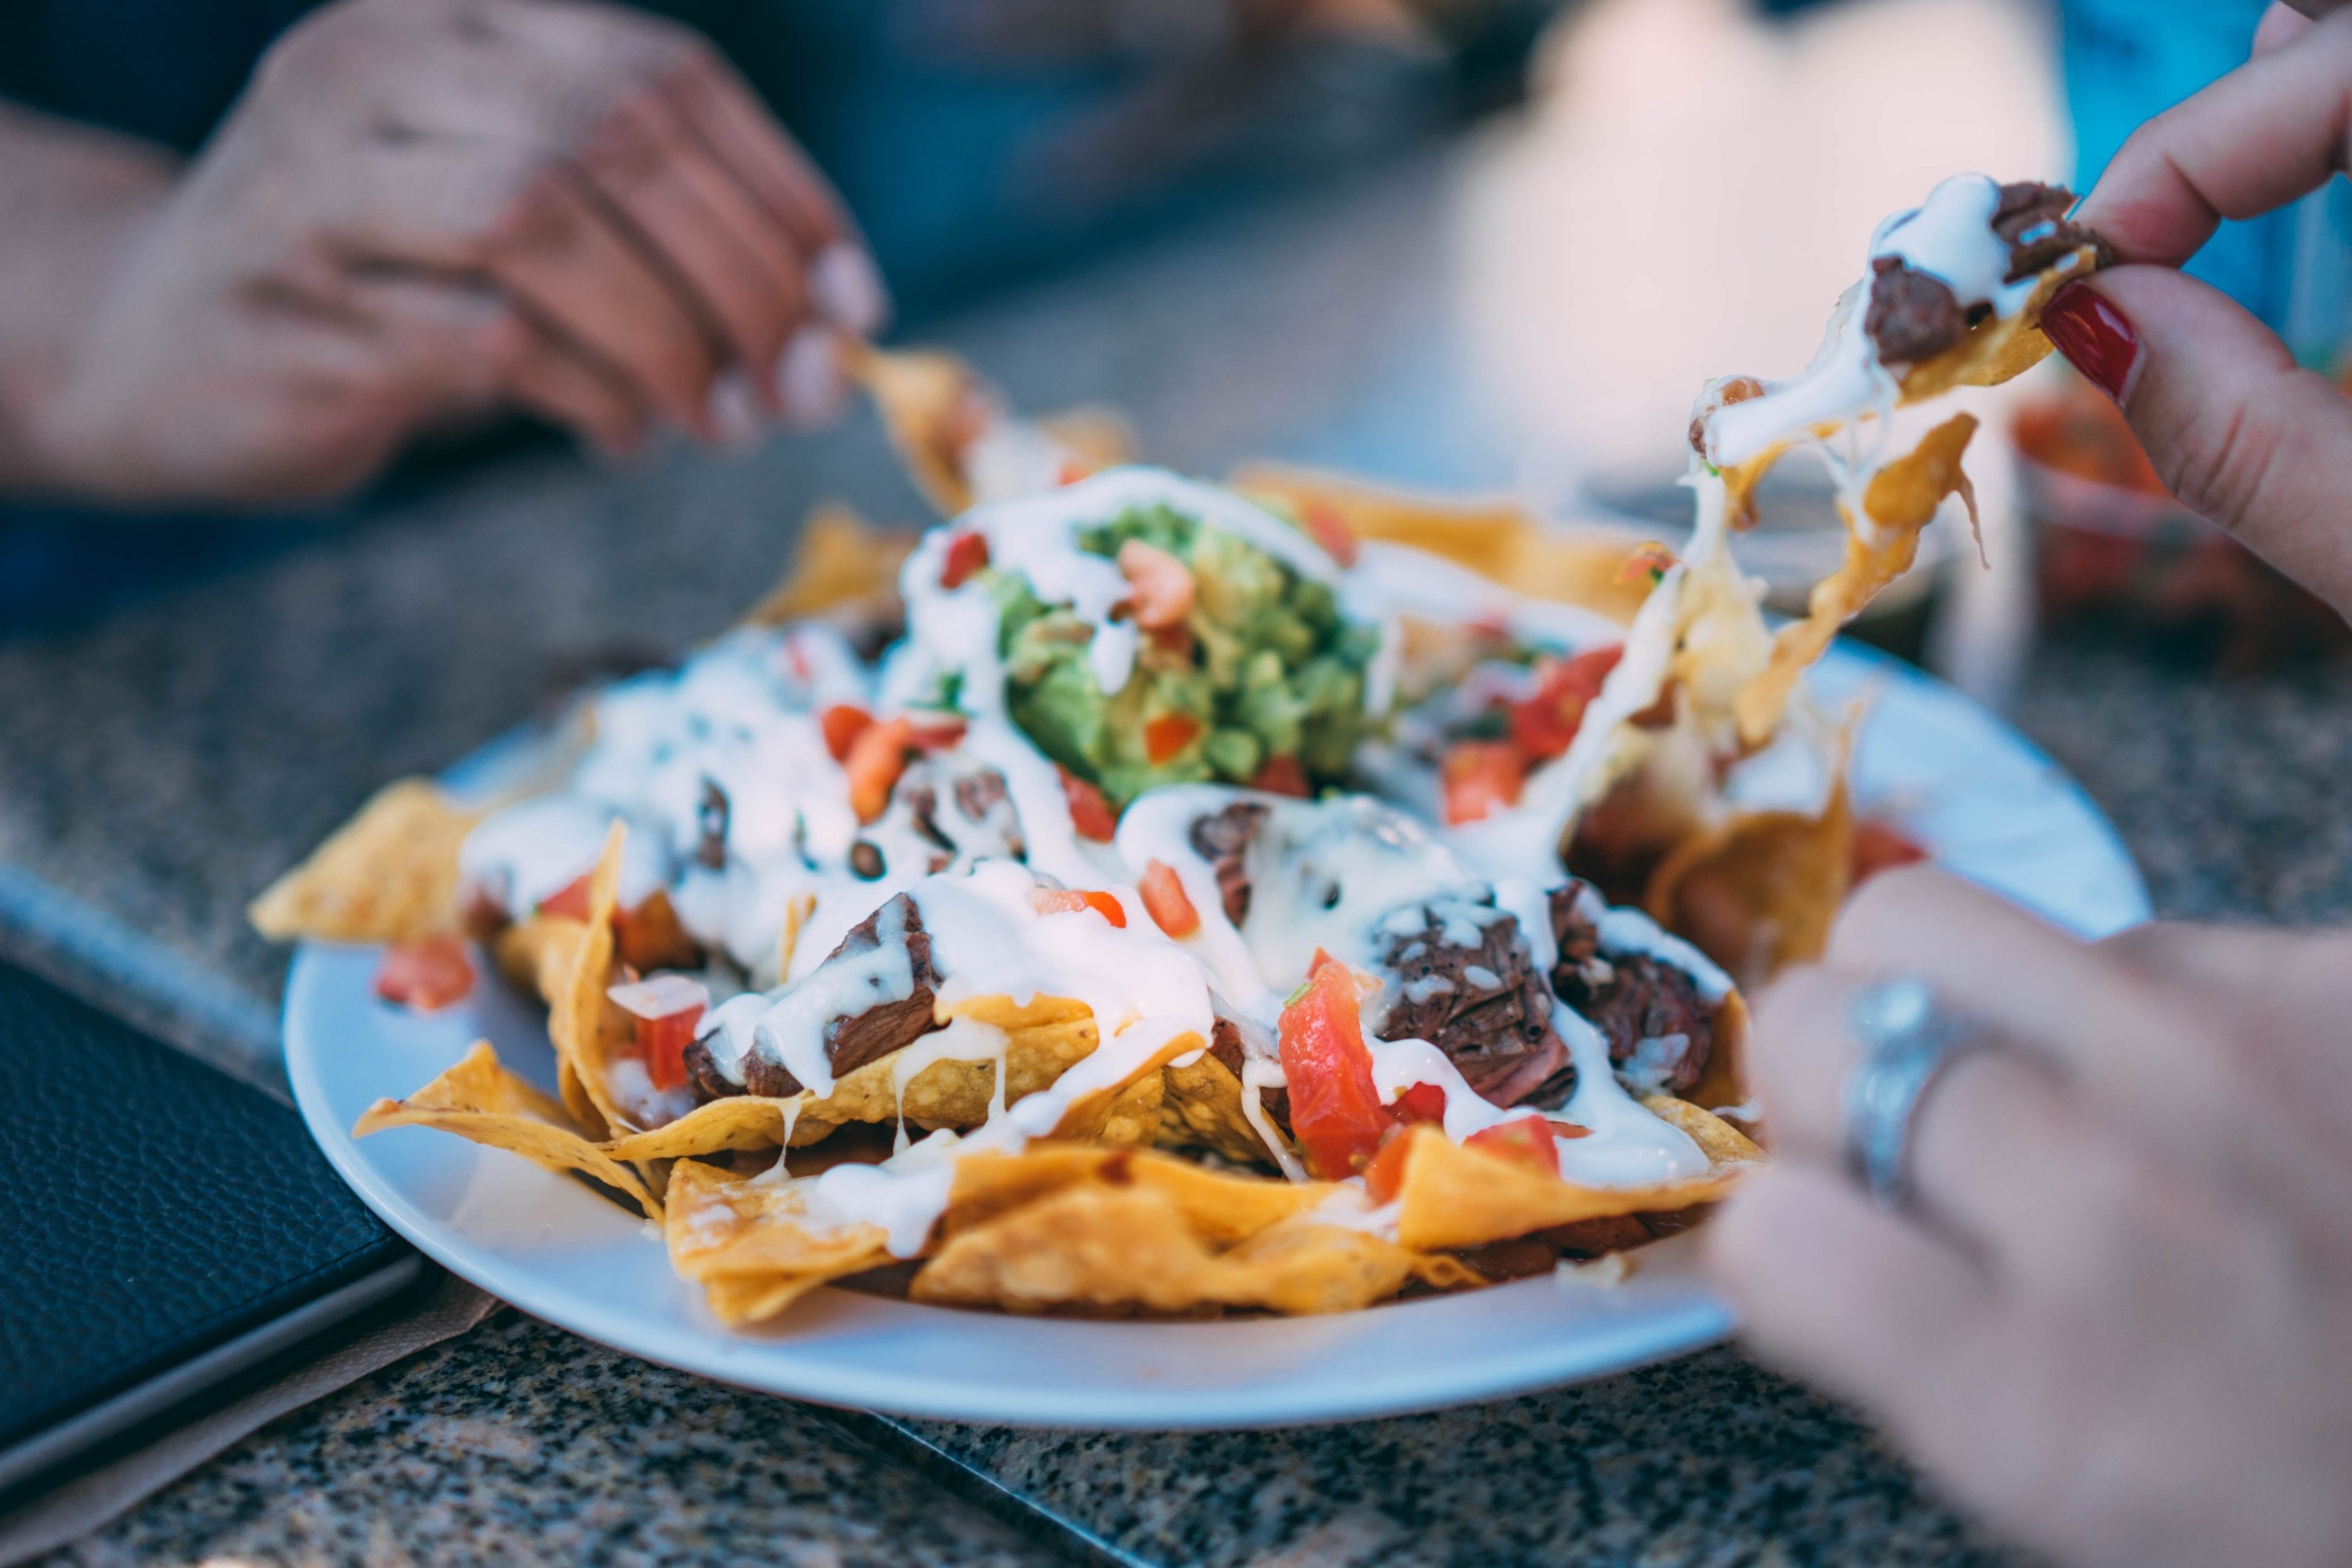 Nachos and Cheese being grabbed by many hands